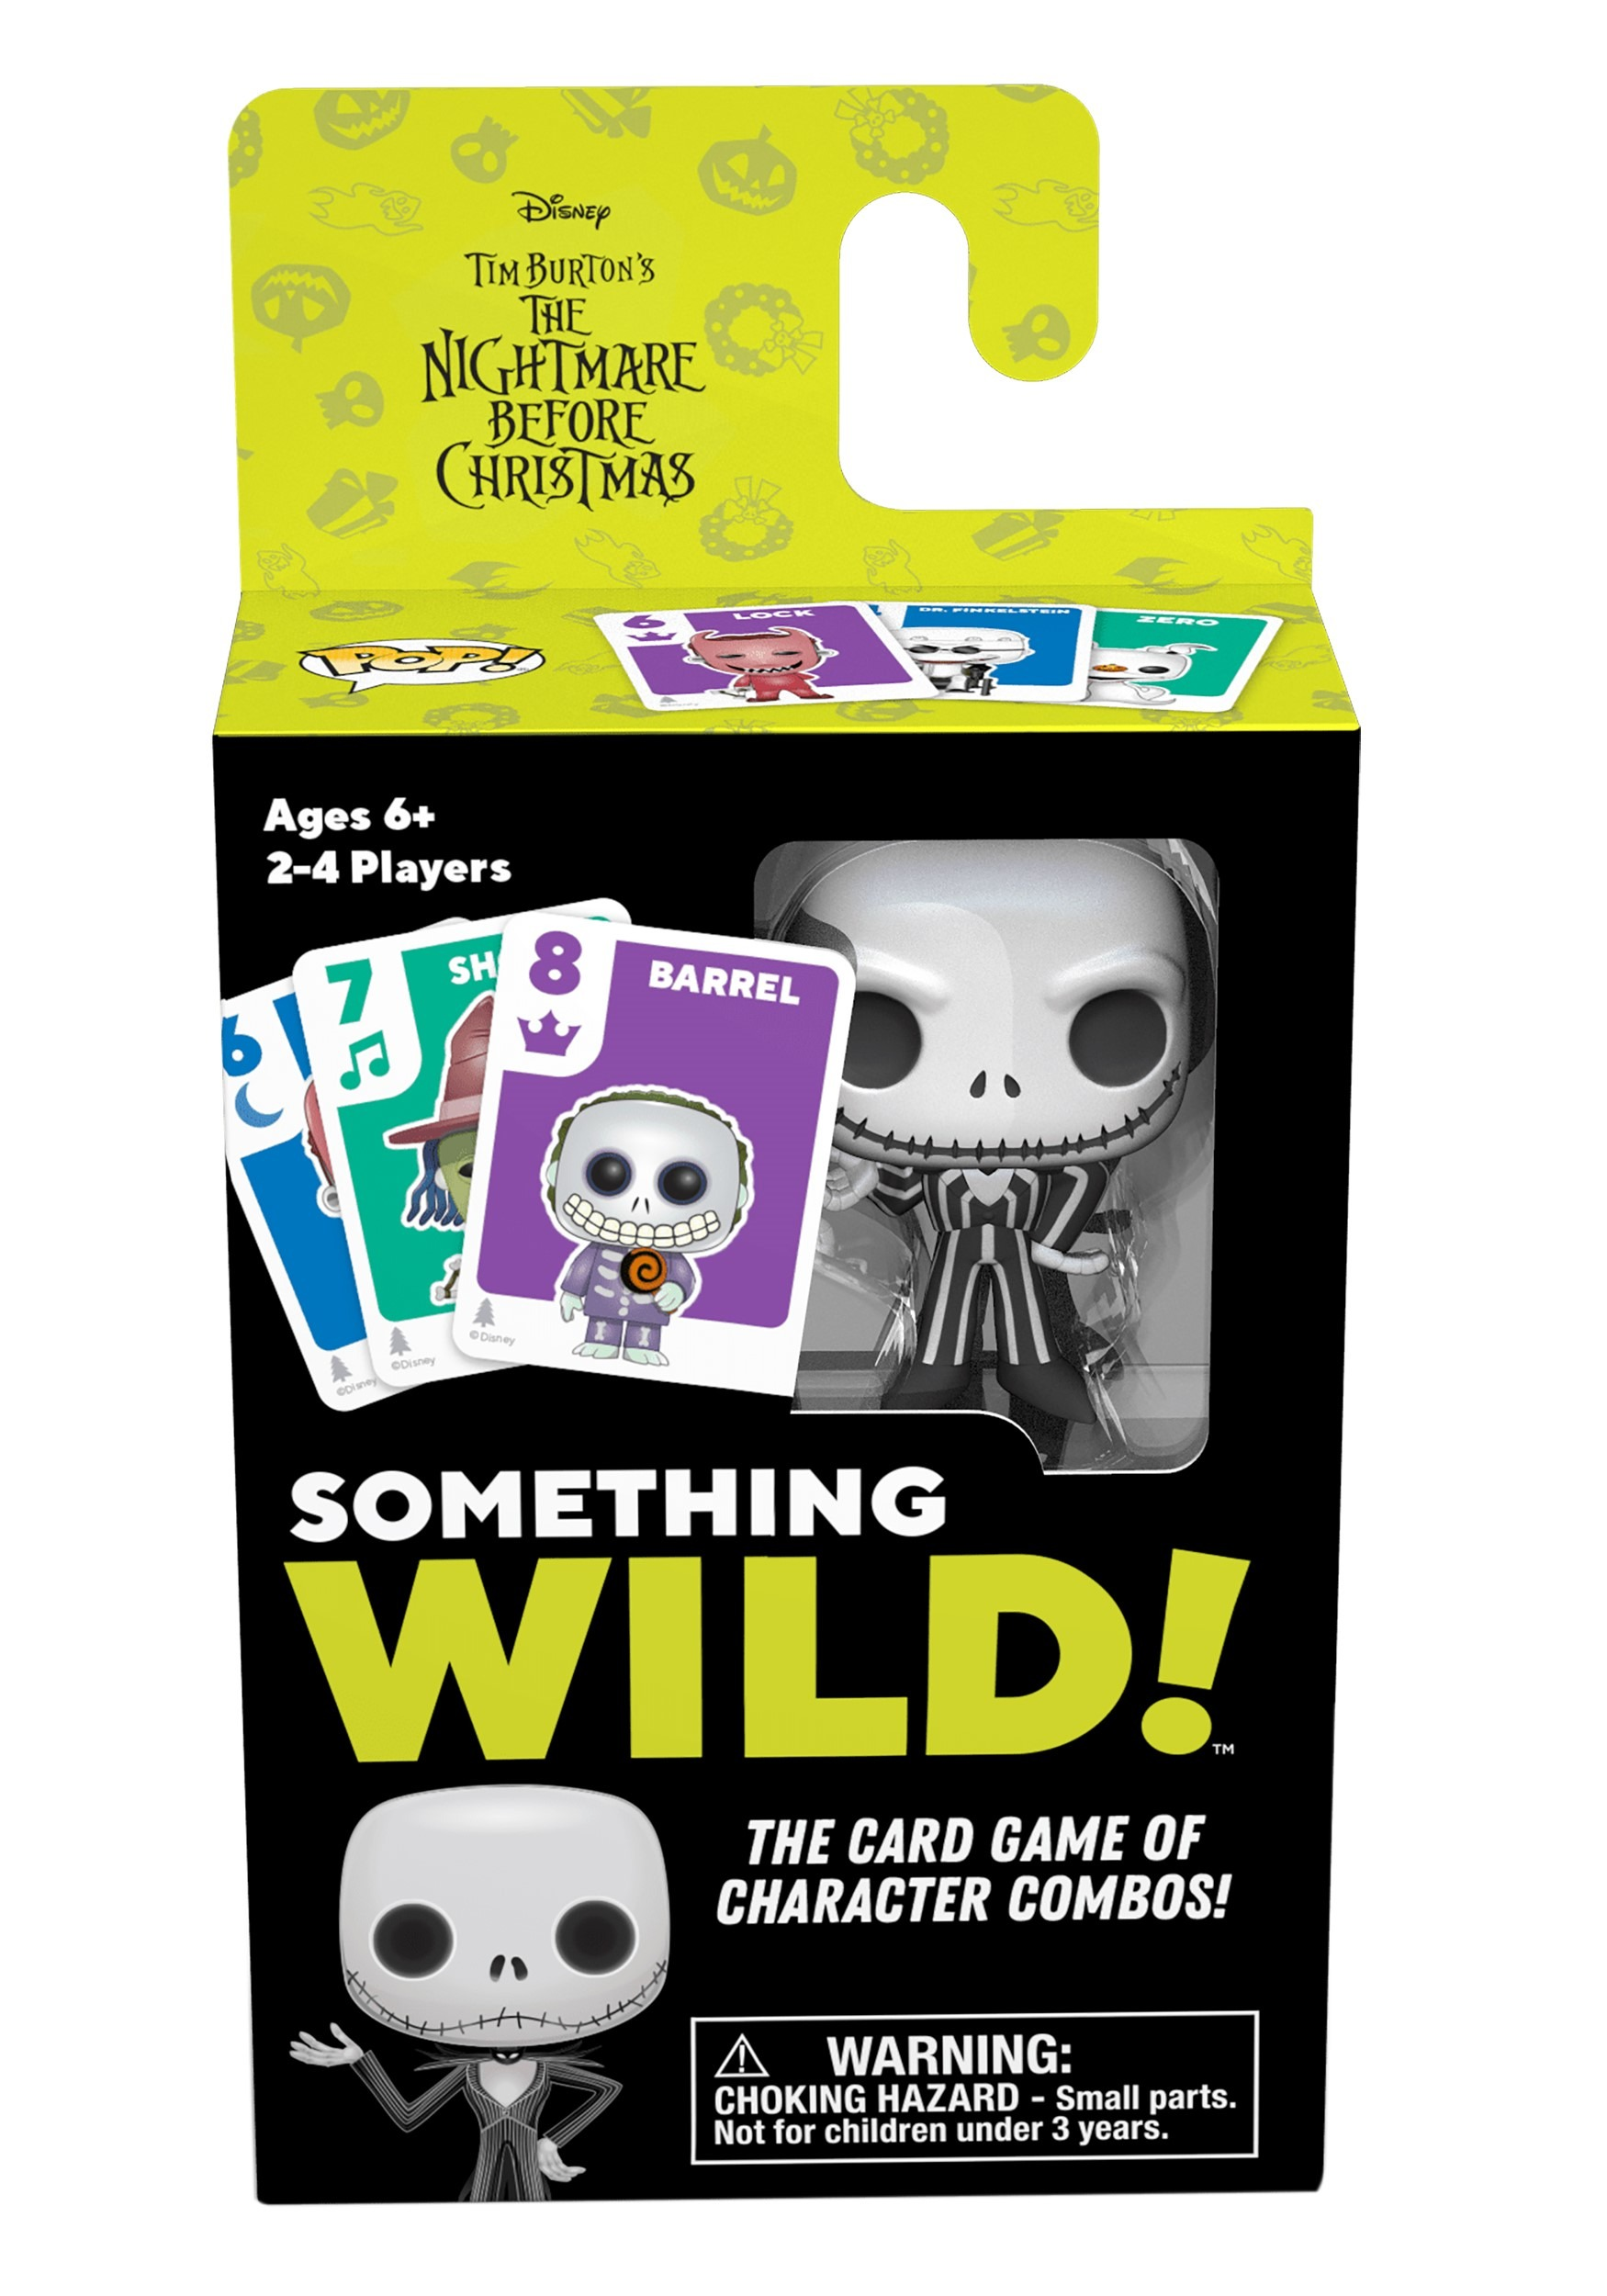 The Nightmare Before Christmas Signature Games: Something Wild Card Game